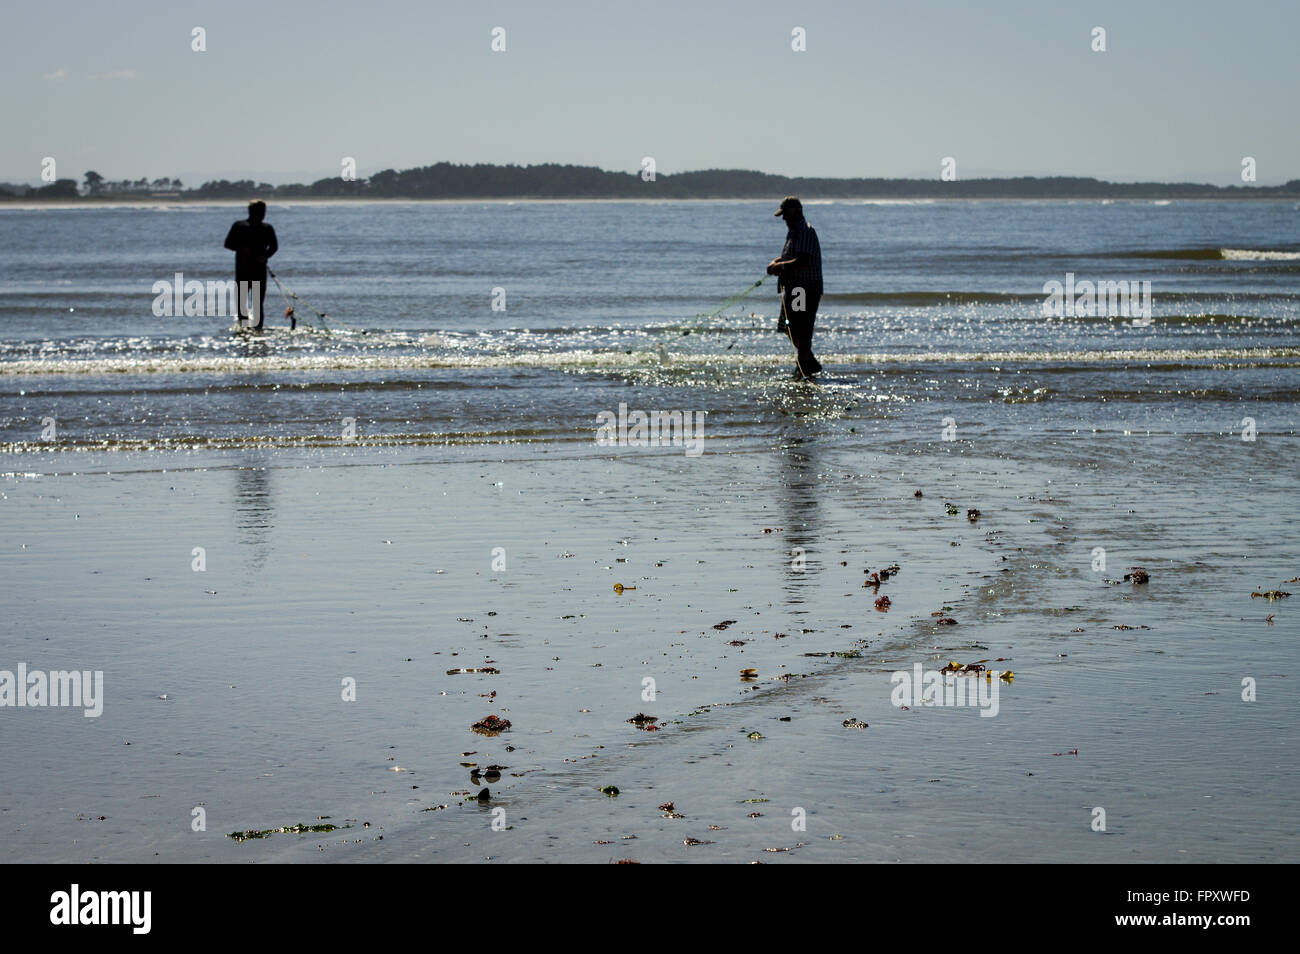 Flounder catching in Riverton, New Zealand - Stock Image